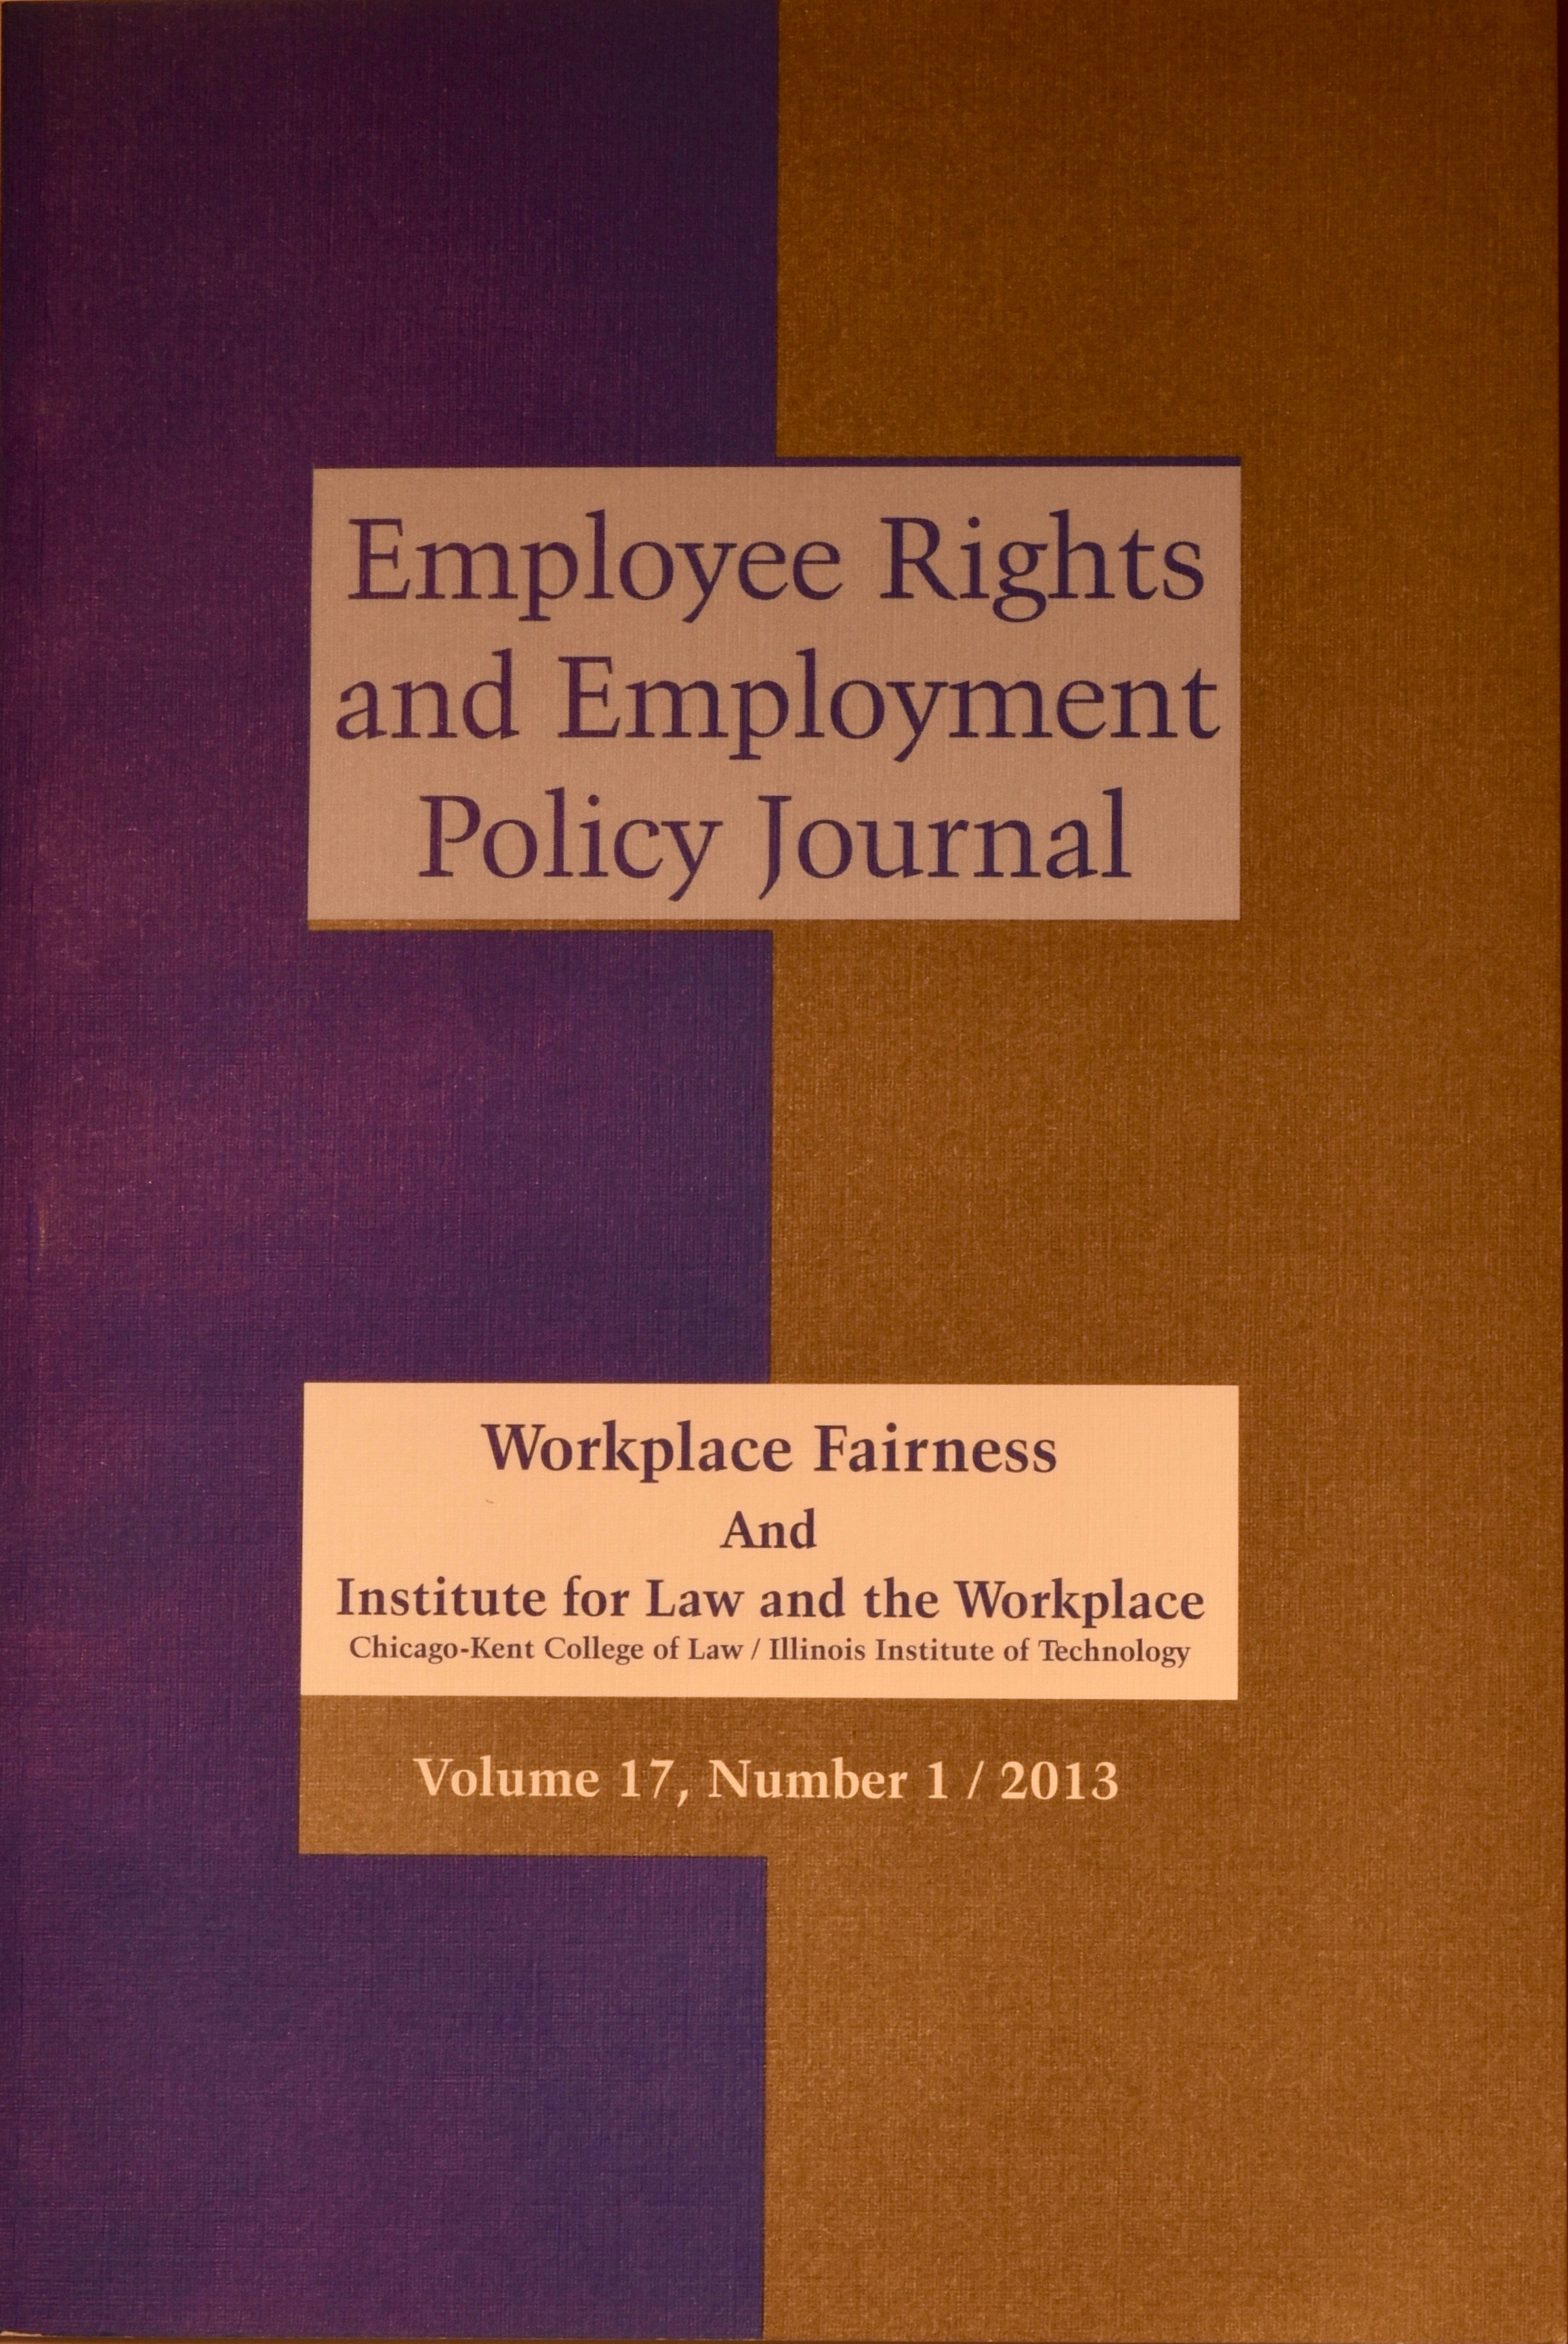 Employee Rights and Employment Policy Journal